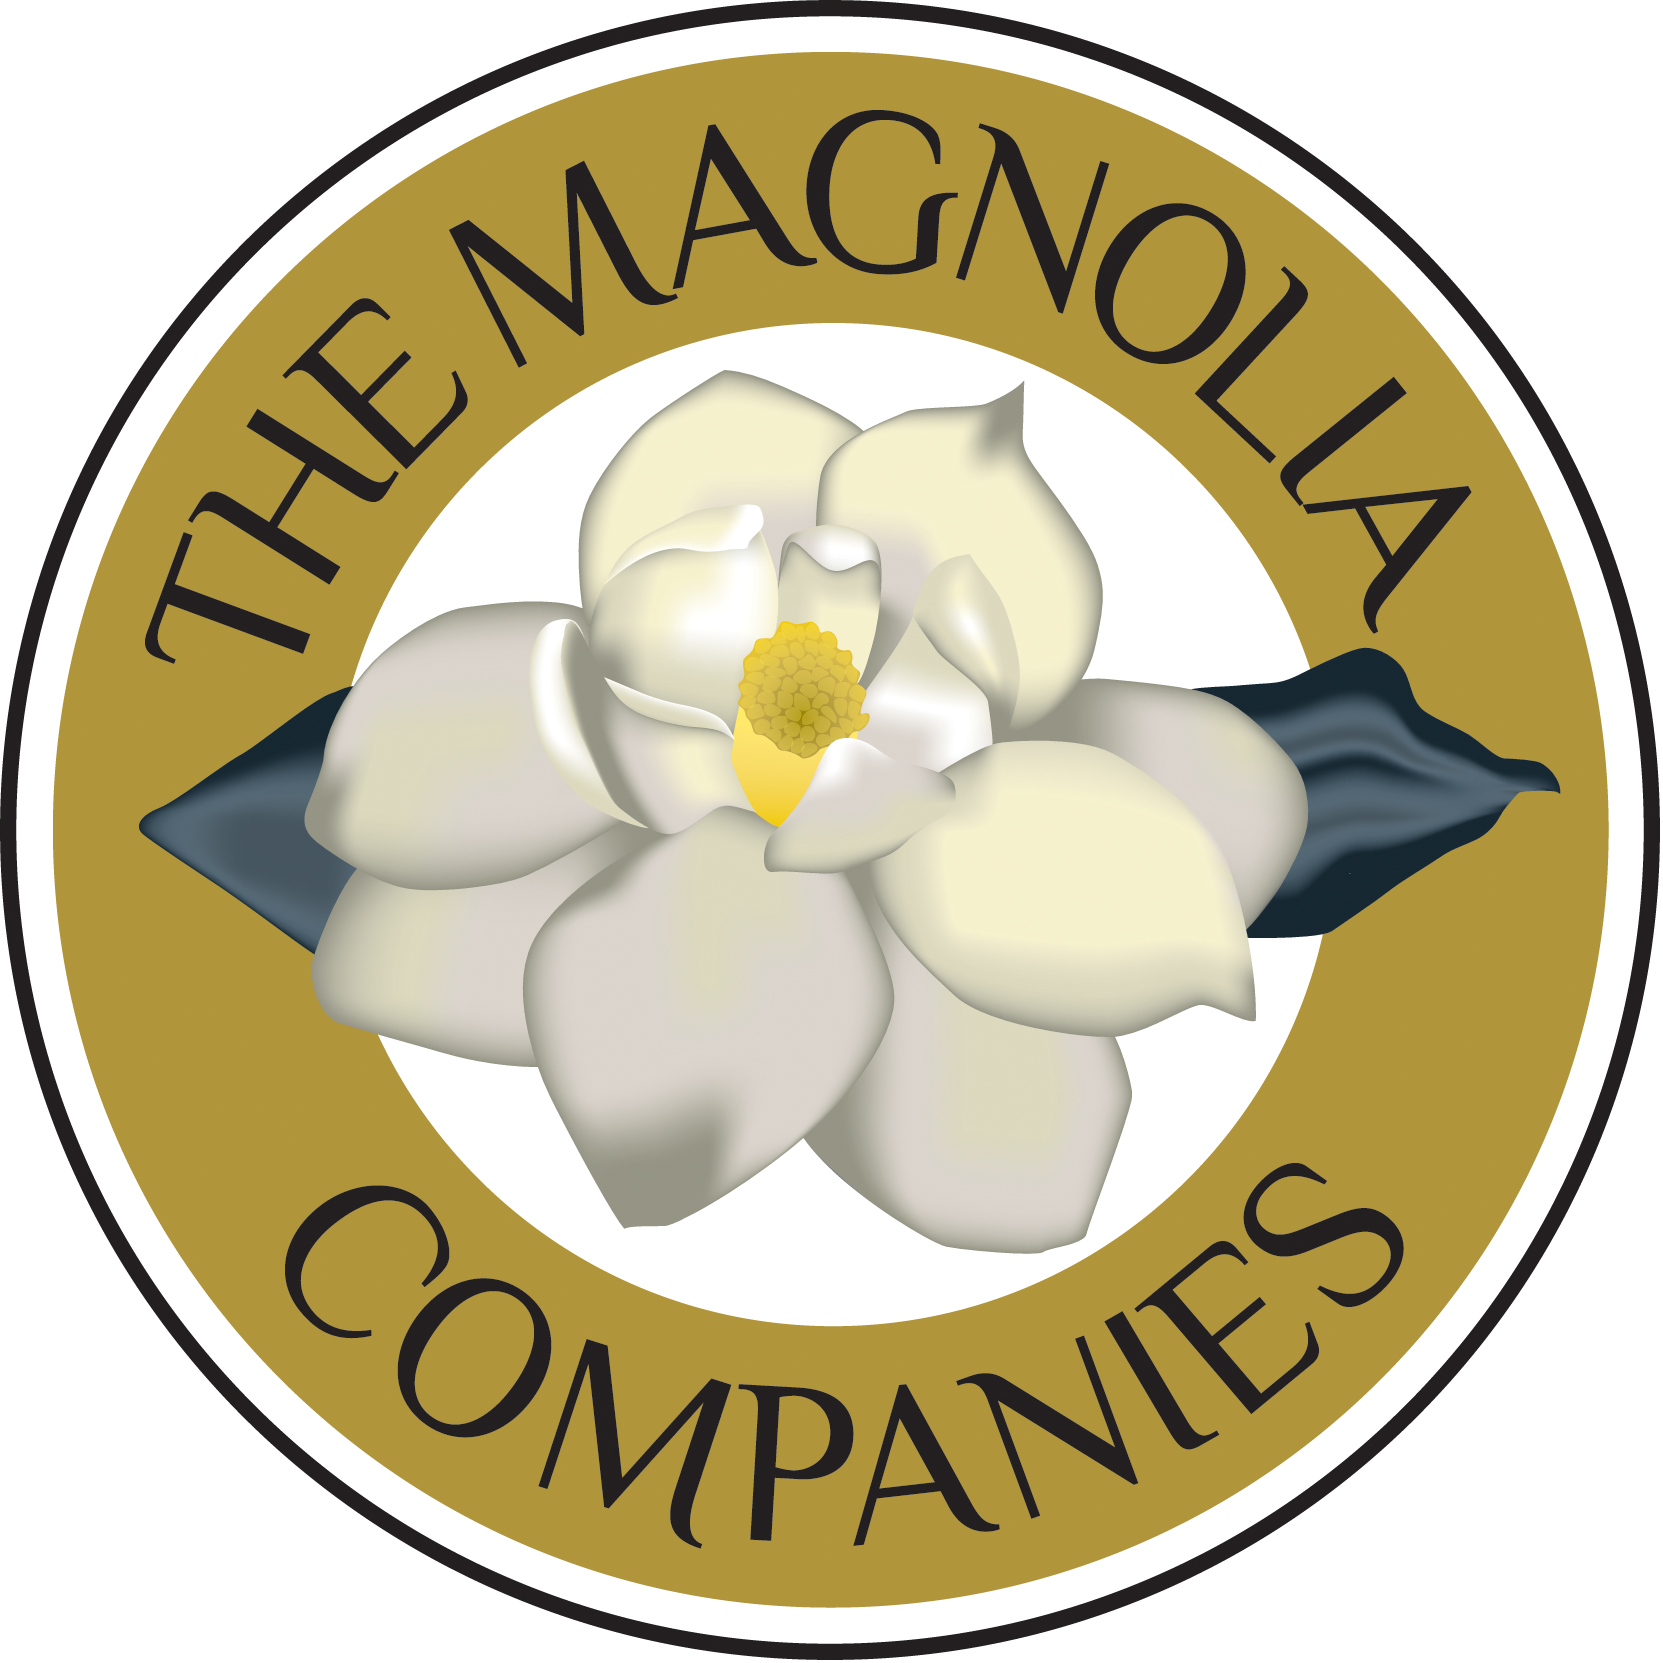 Louisiana clipart magnolia. Commercial residential real estate